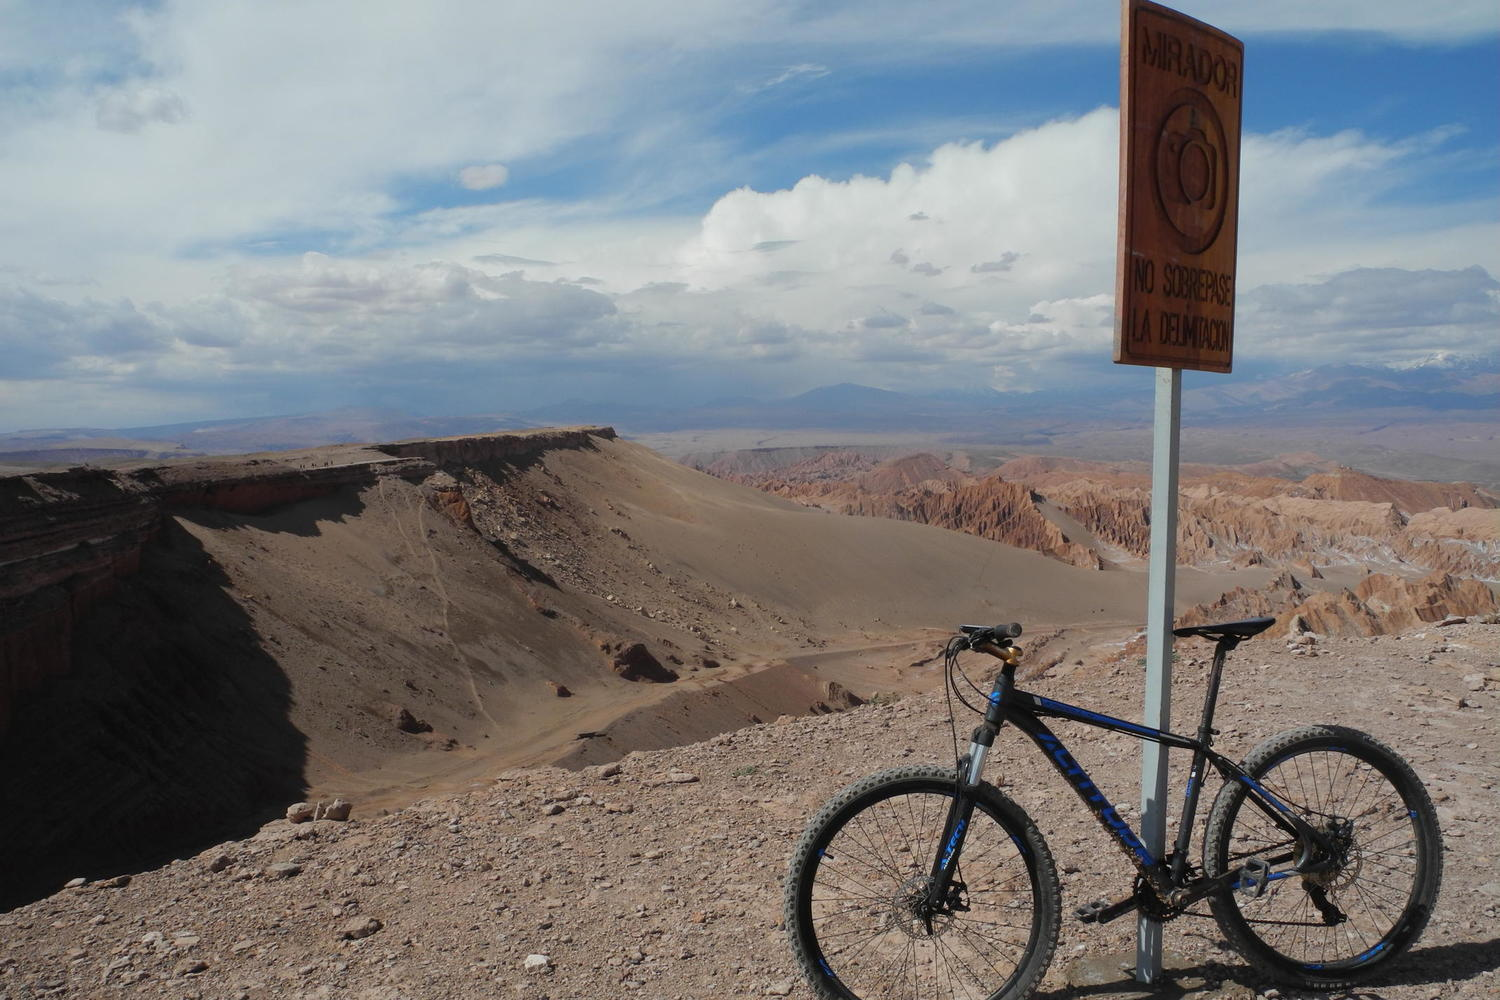 Cycling up to the viewpoint over the Valley of the Moon in the Atacama